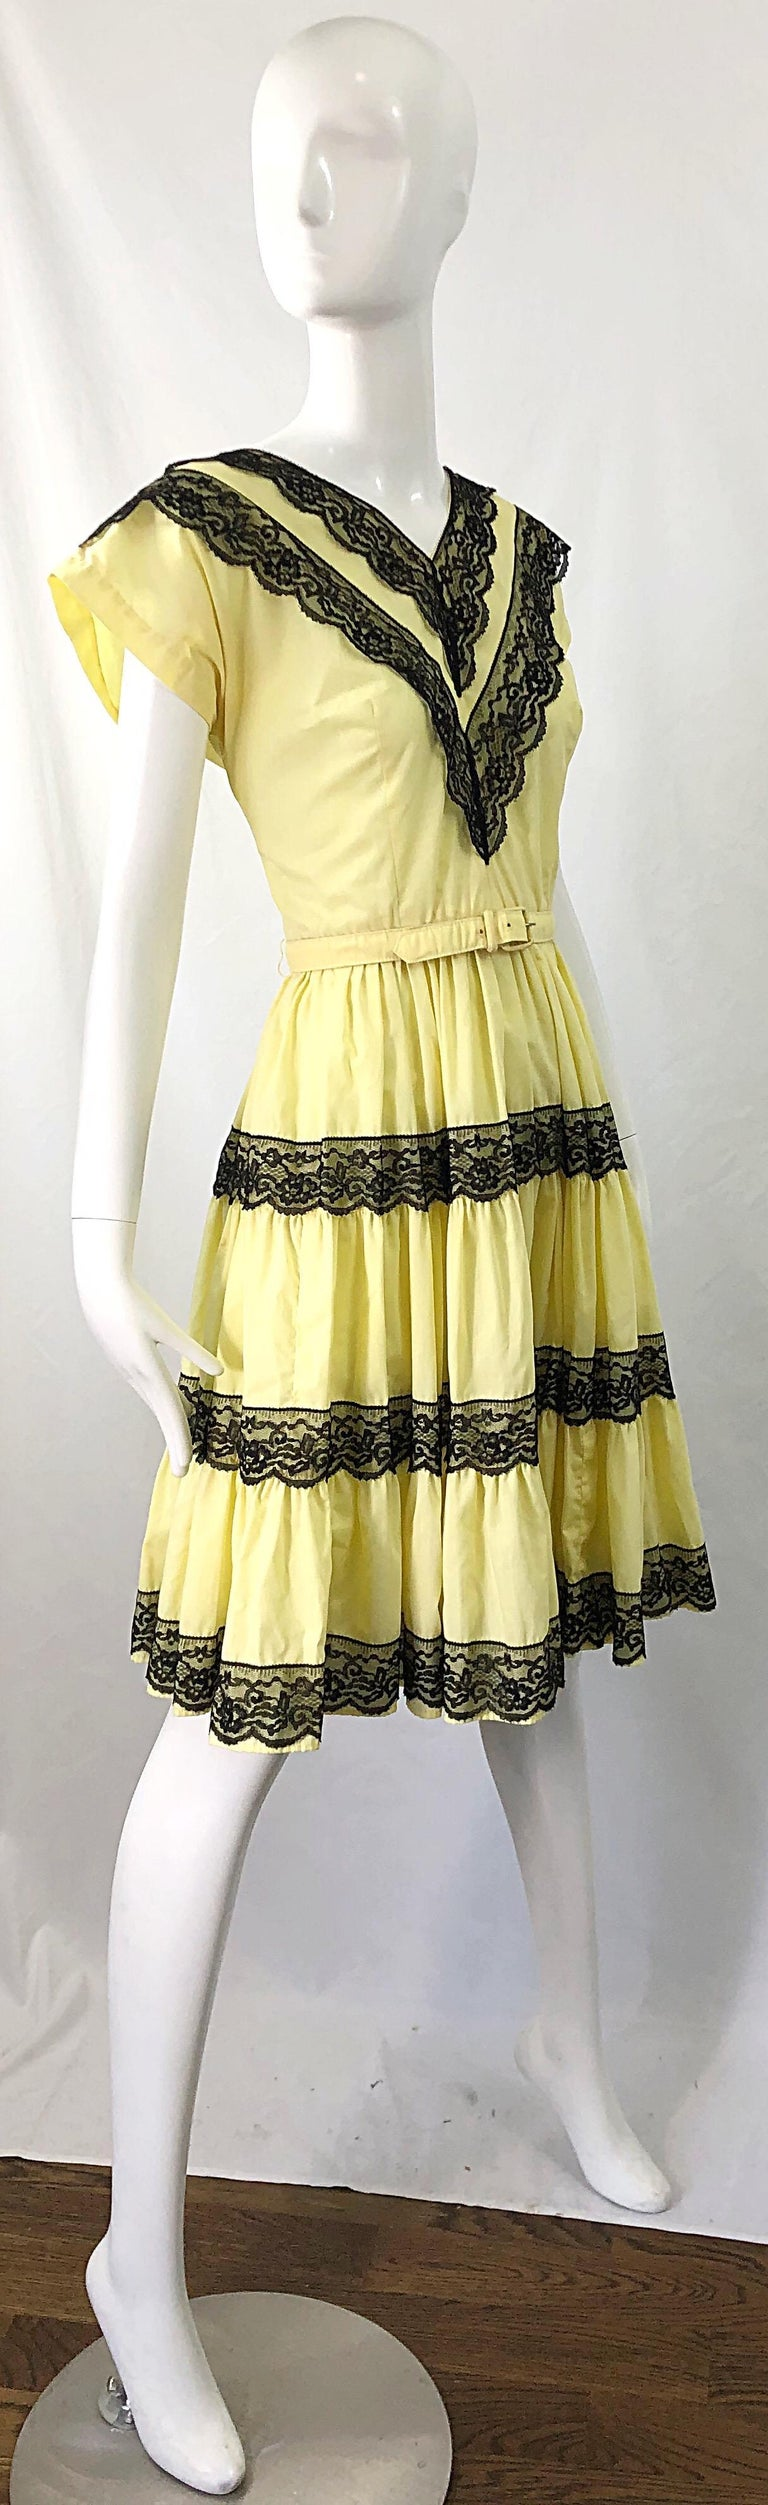 1950s Bettina of Miami Yellow + Black Cotton Lace Fit n' Flare Vintage 50s Dress For Sale 4